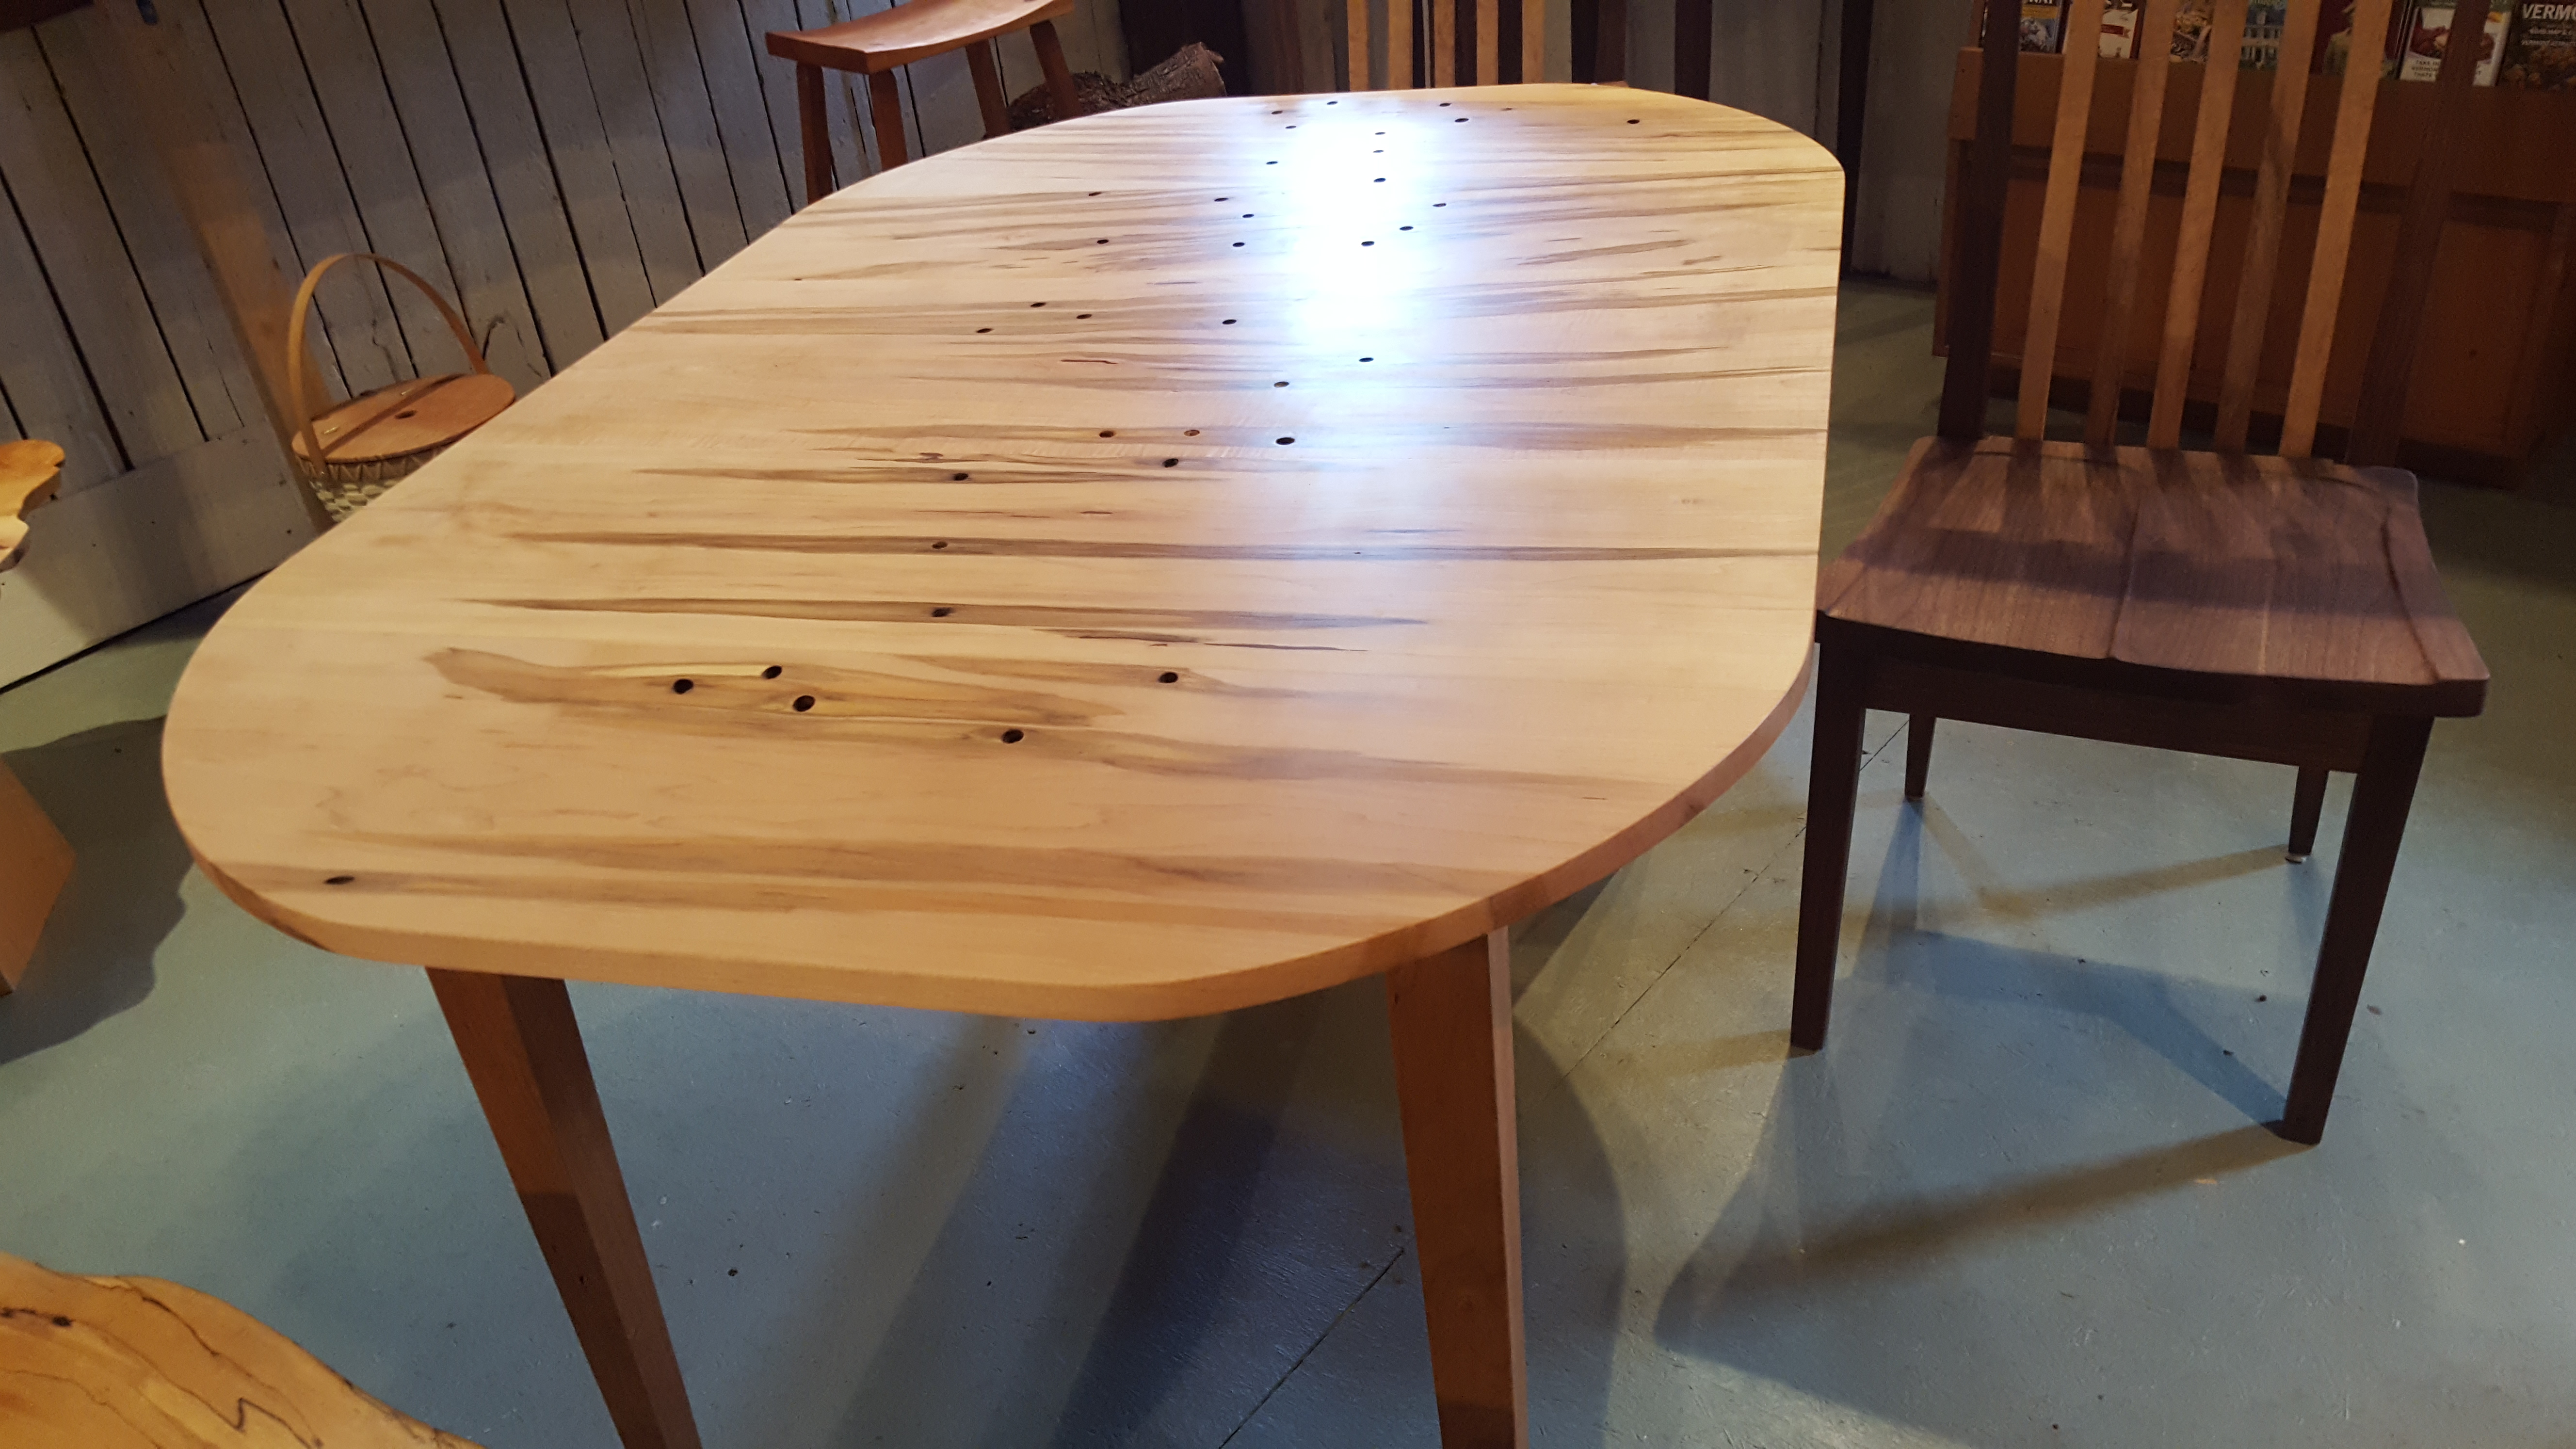 cherry, maple, table, artisans, woodworking